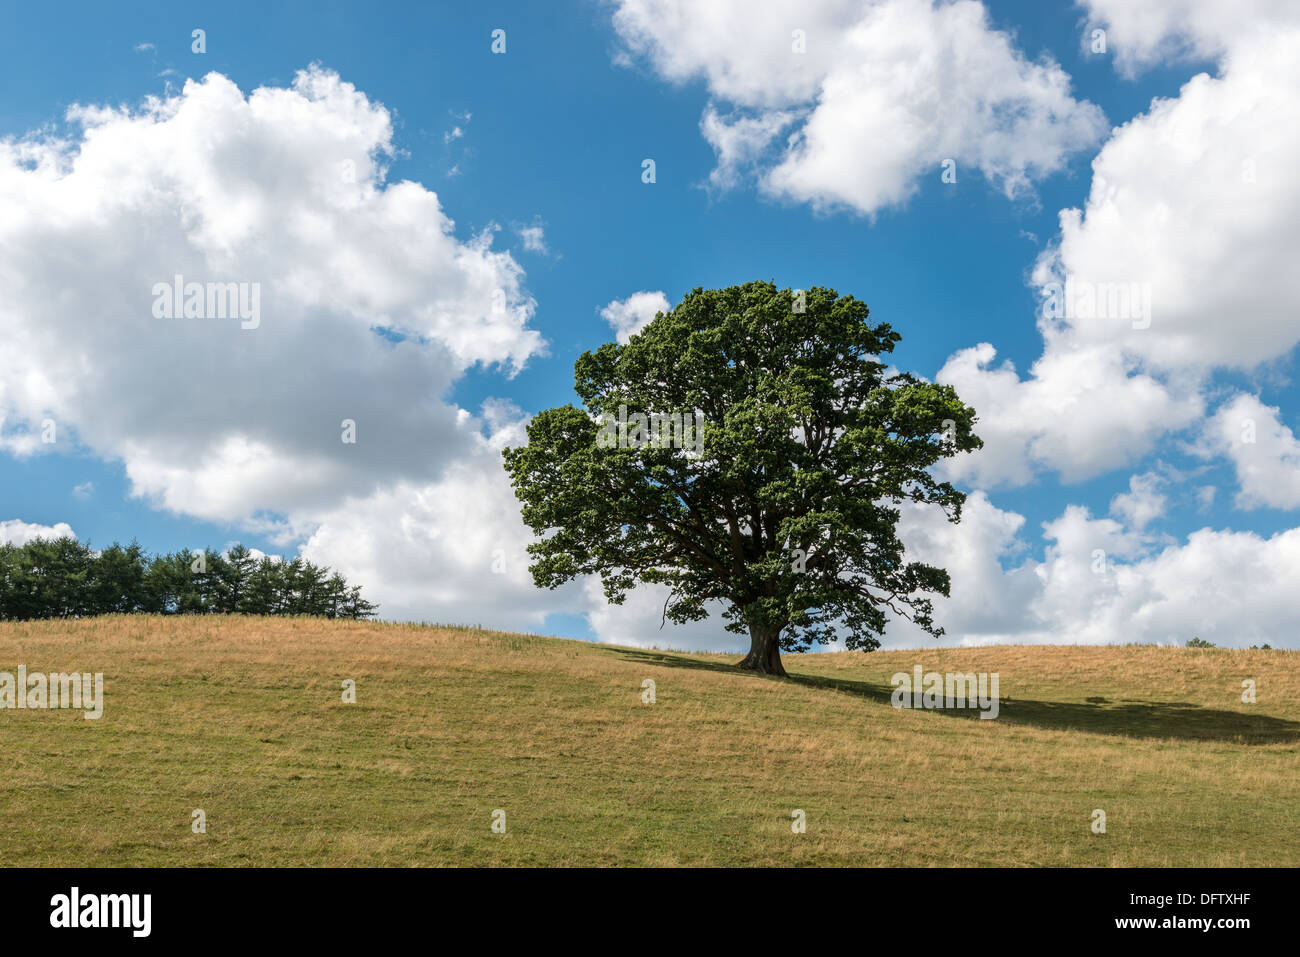 OAK TREE IN HIGH SUMMER ON GRASS COVERED HILLS WITH BLUE SKY AND WHITE CLOUDS. HEDGE AT TOP OF HILL. UK PORTRAIT - Stock Image